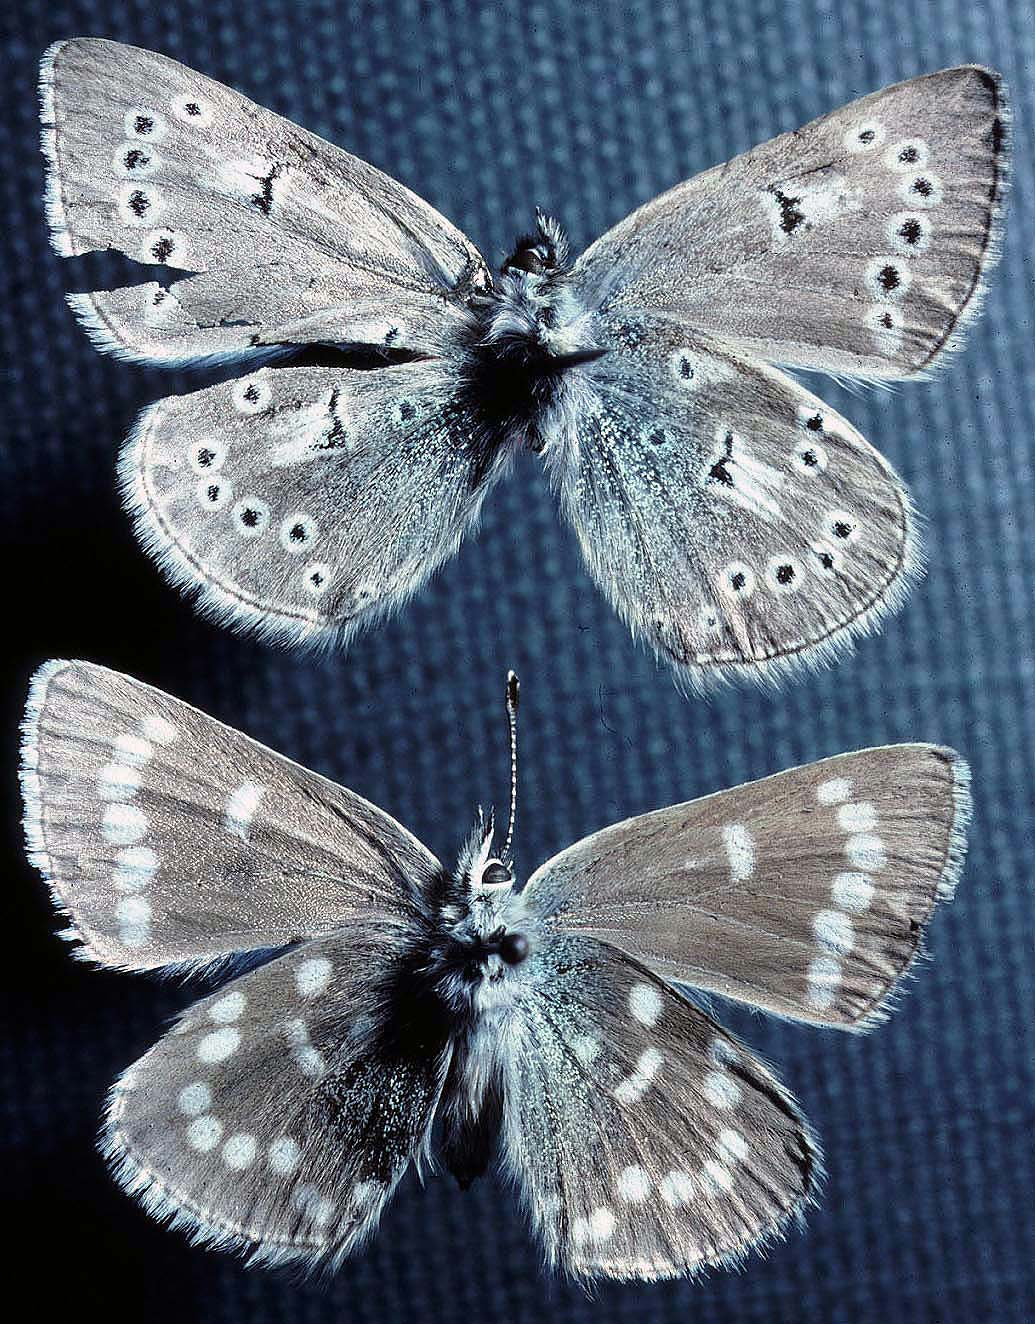 Two tattered blue and gray butterflies are mounted on pins. Specimens like these are all that remain of the Xerces blue butterfly.